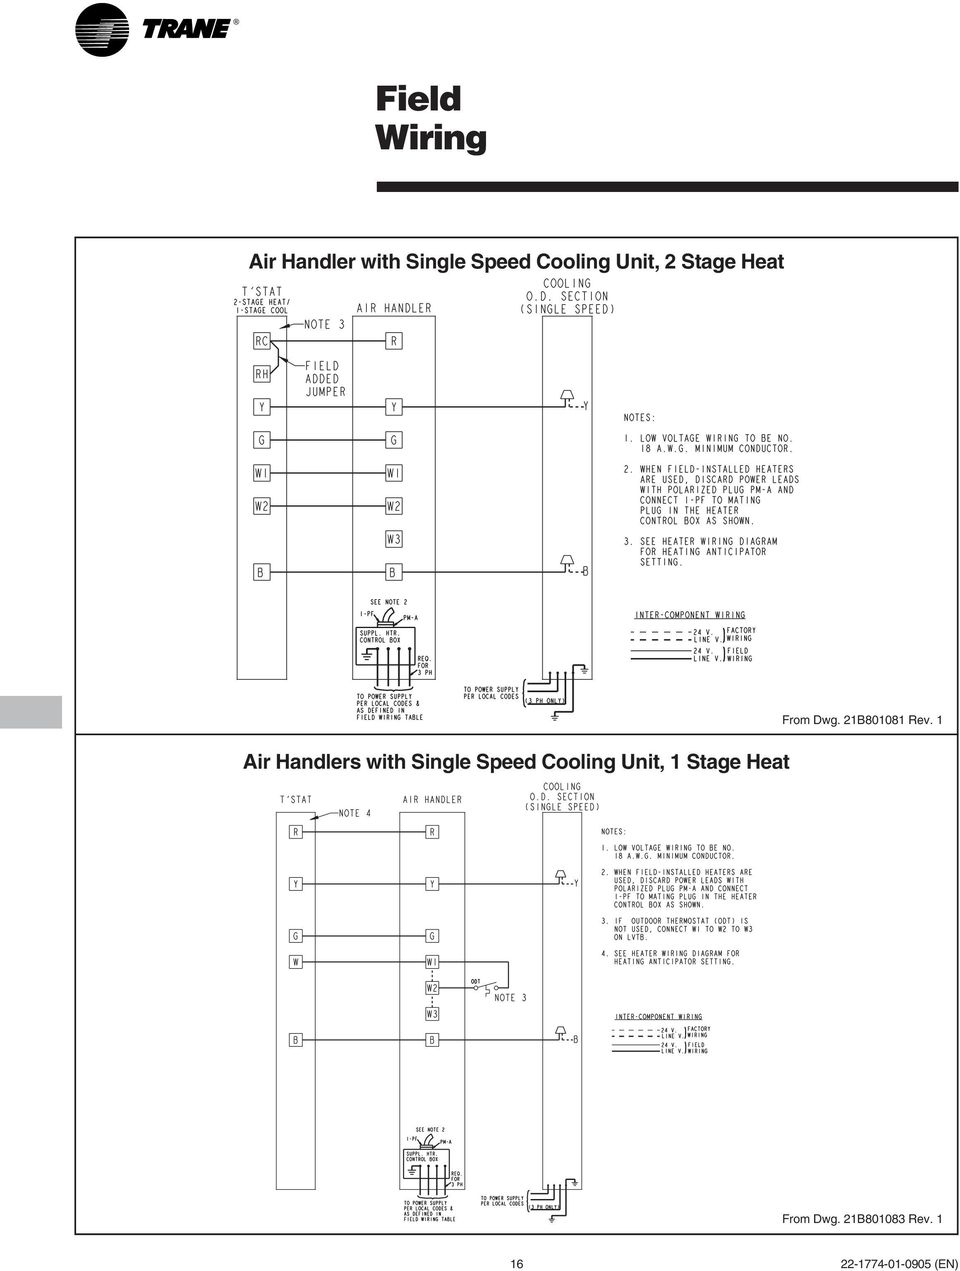 Cooling Heat Pump Convertible Air Handlers Pdf Thermostat 2 1 Wiring Diagram With Single Speed Unit 17 Field Diagrams